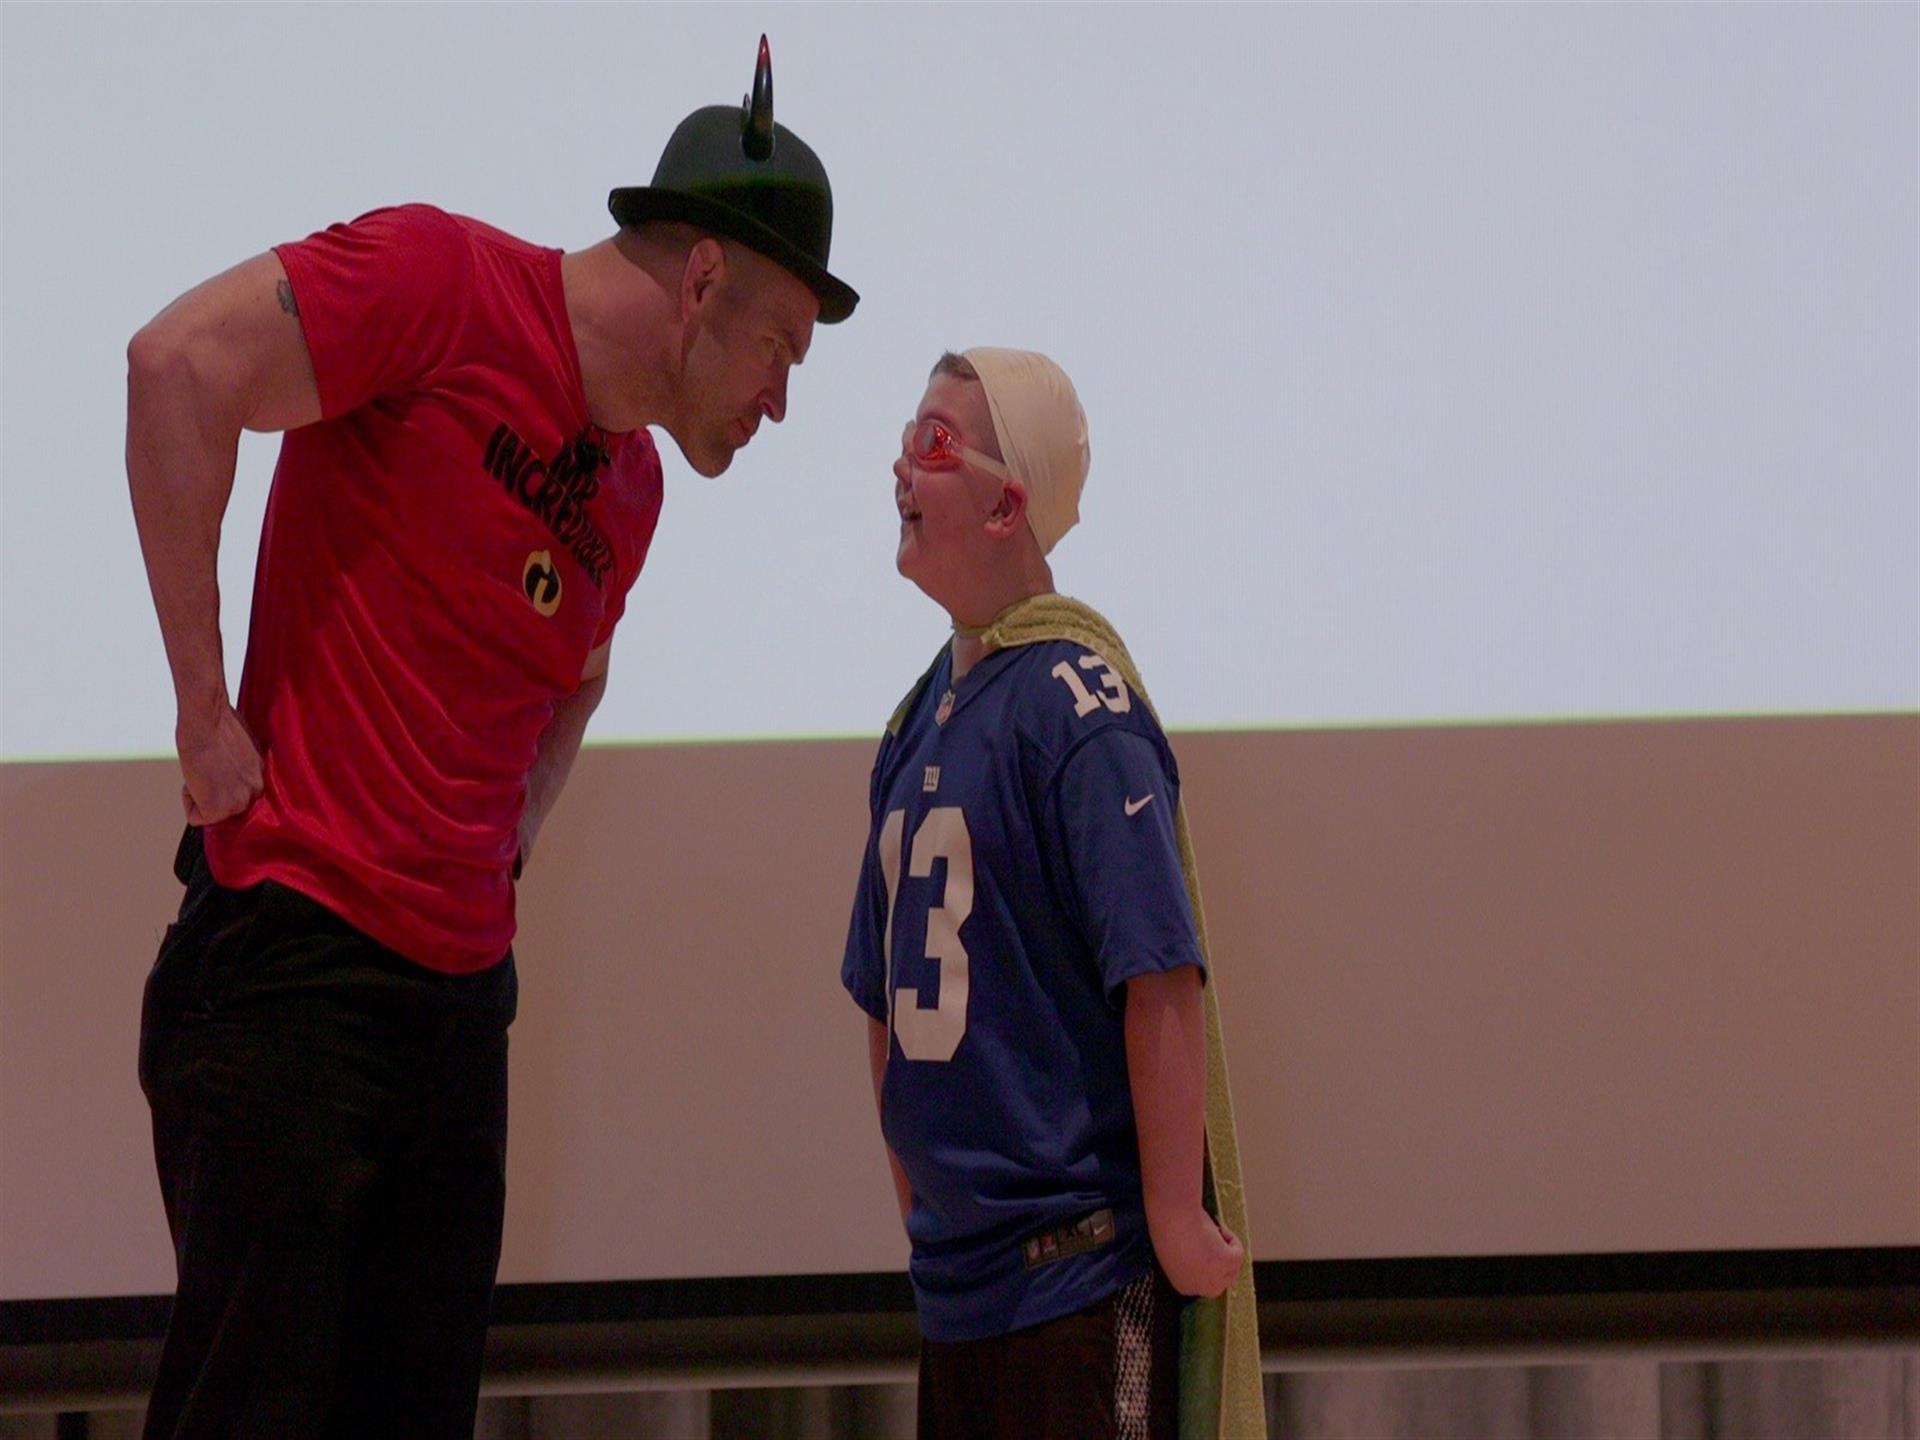 Man in hat facing young boy wearing cape